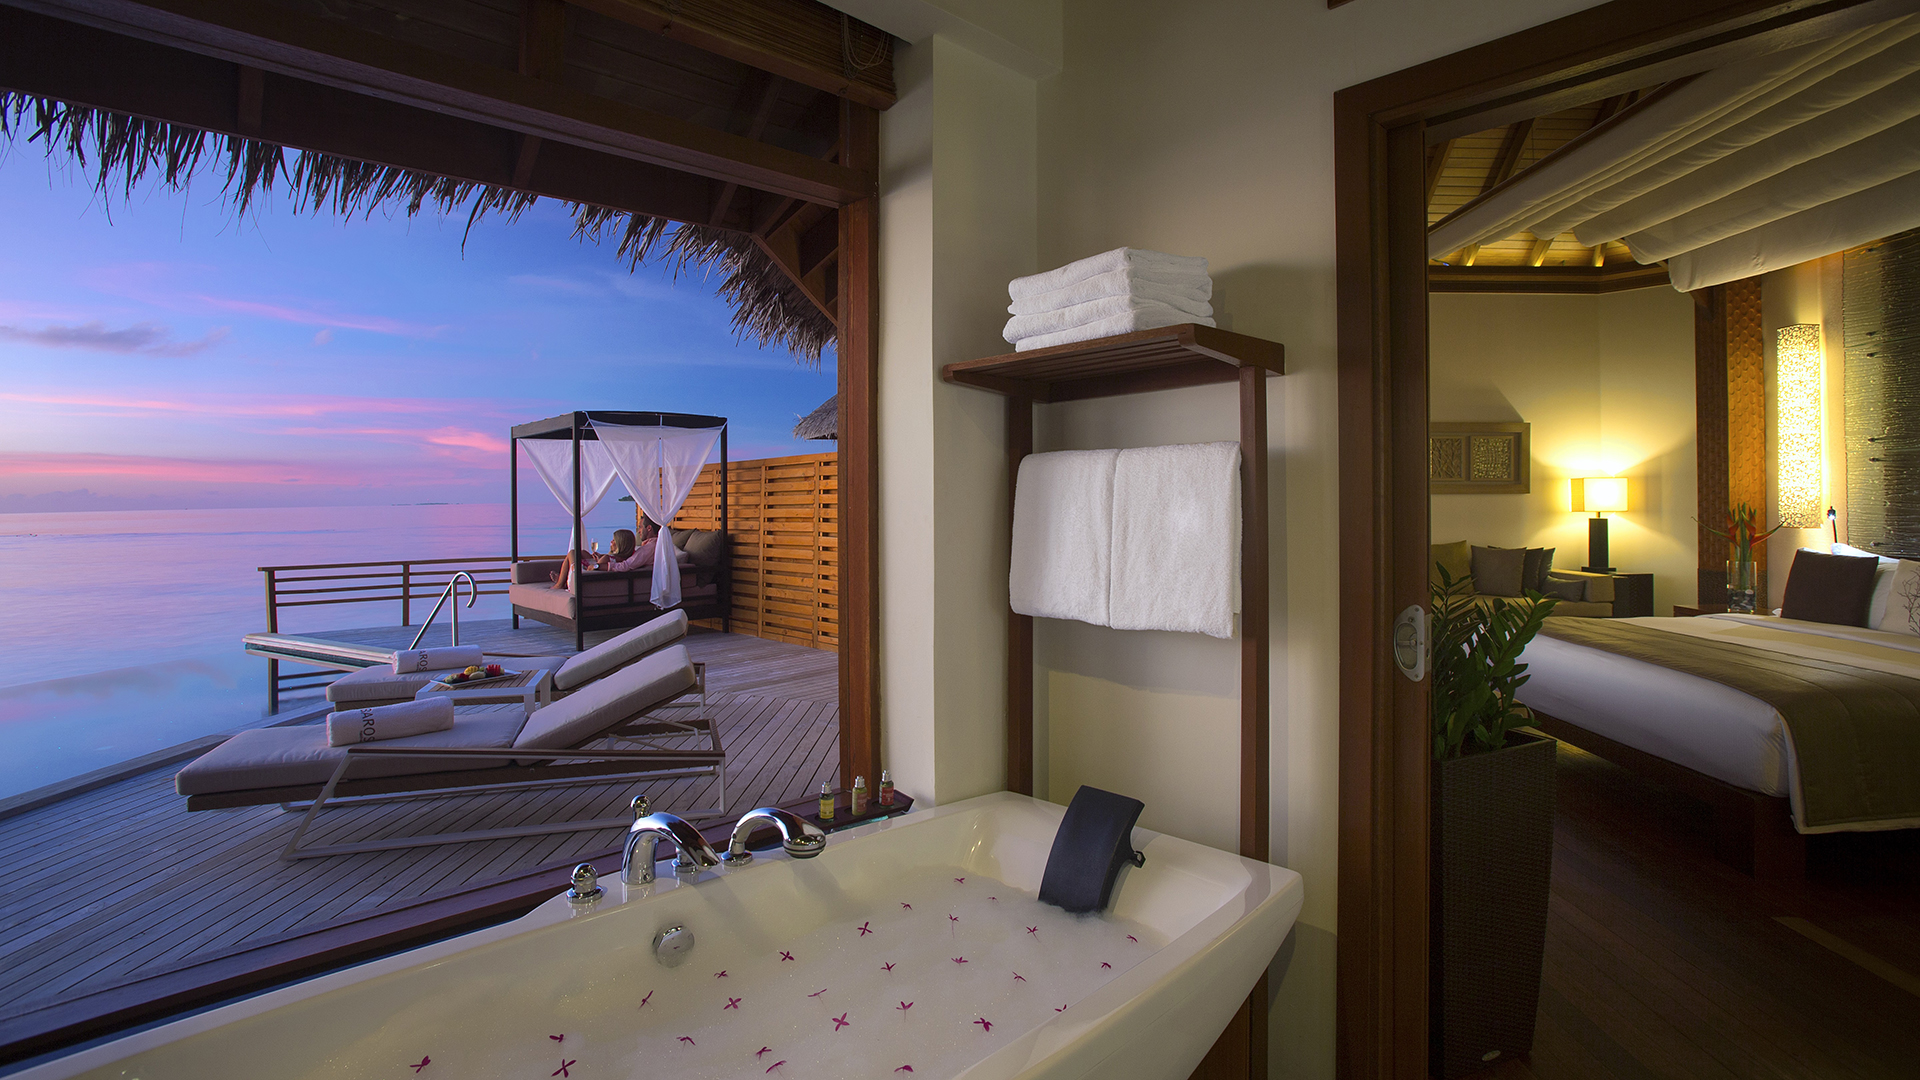 Luxury hotels for romantic milestones carrier for Luxury romantic hotels